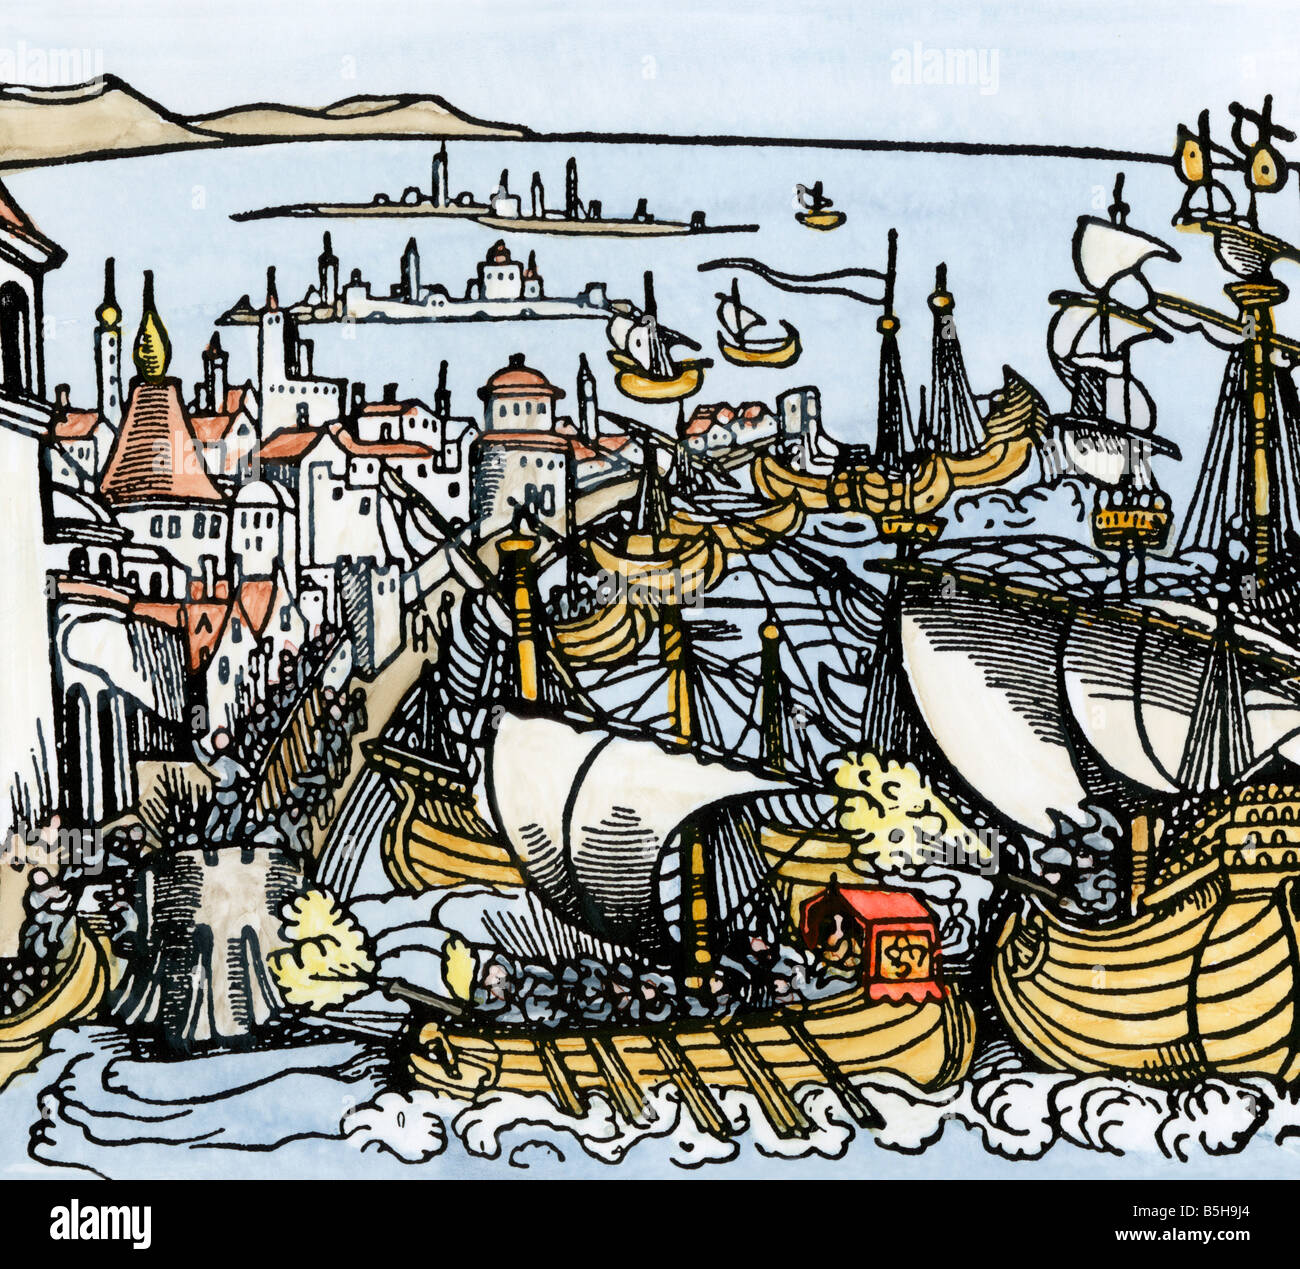 Emperor Charles V attempts to capture Algiers, home of the Barbary Pirates, 1541. Hand-colored woodcut - Stock Image